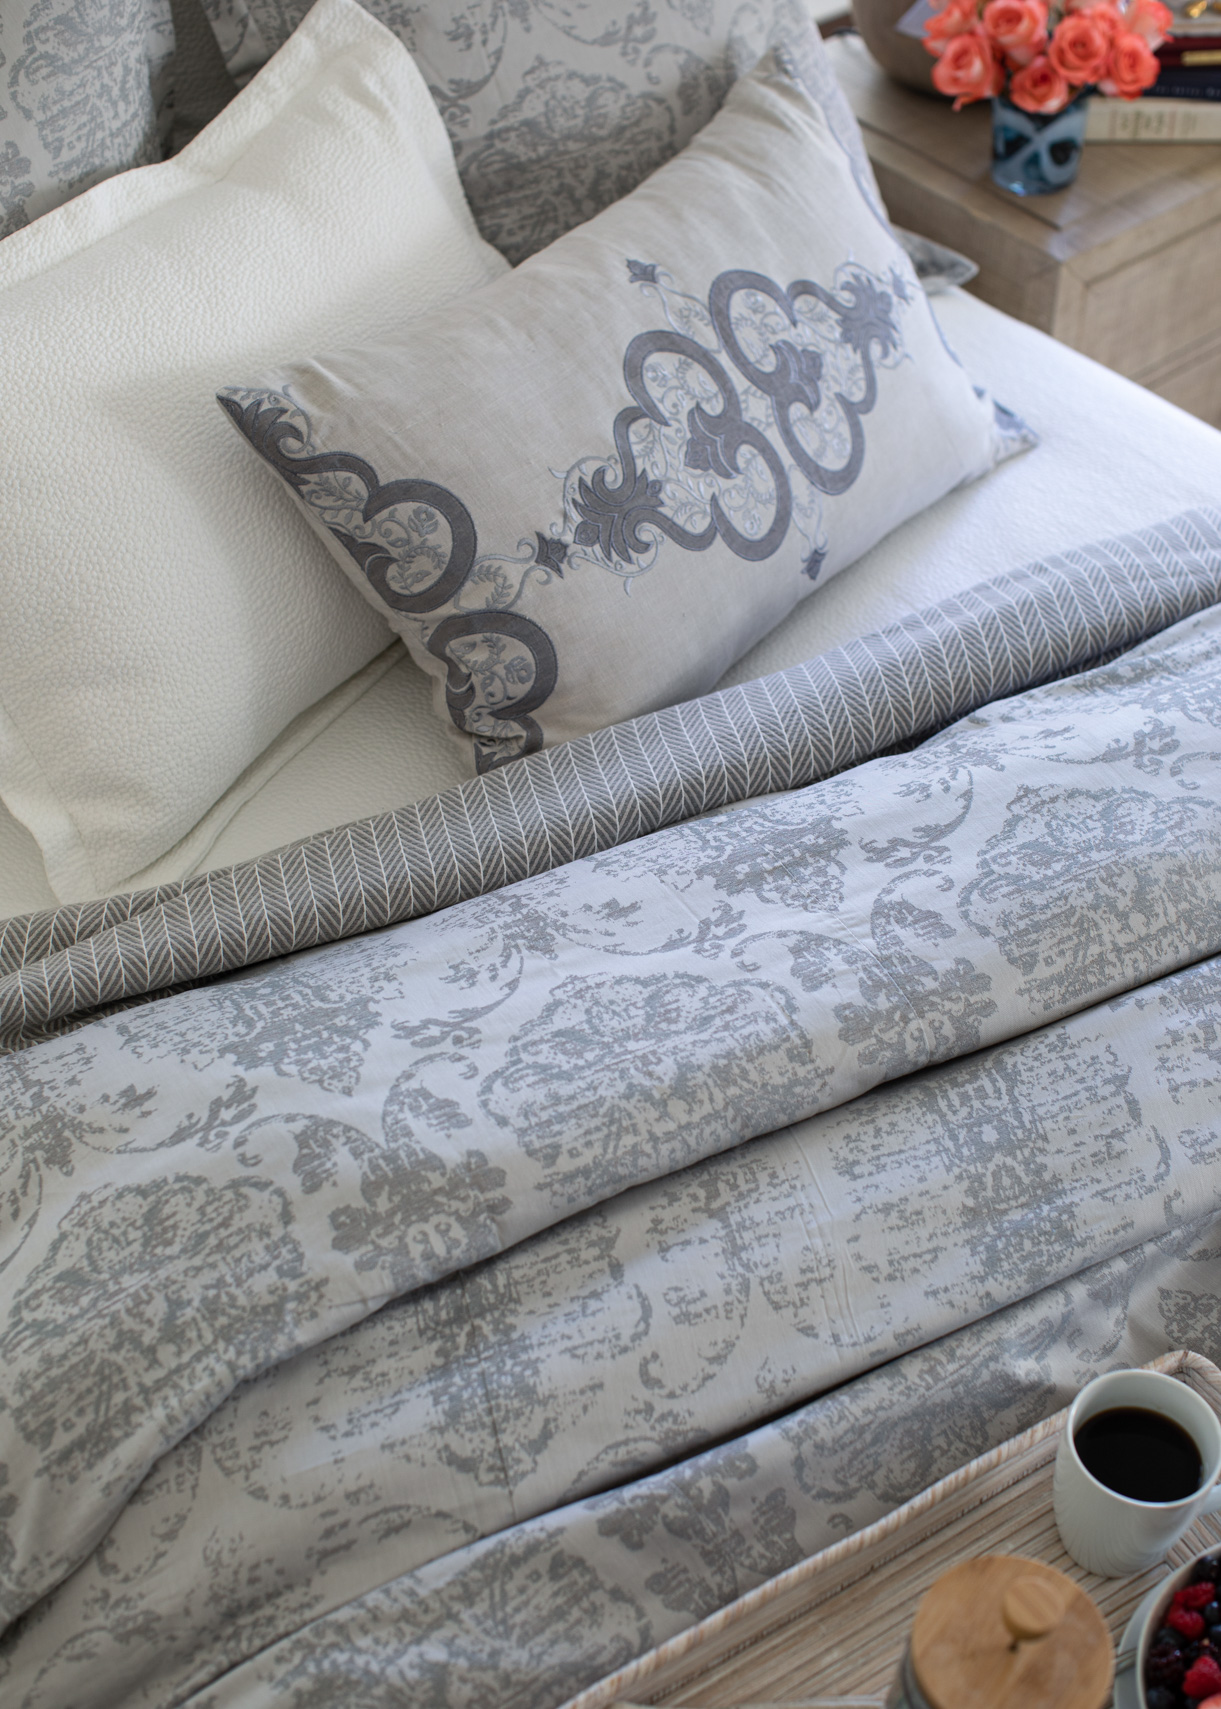 lili-alessandra-bedding-product-jason-risner-photography